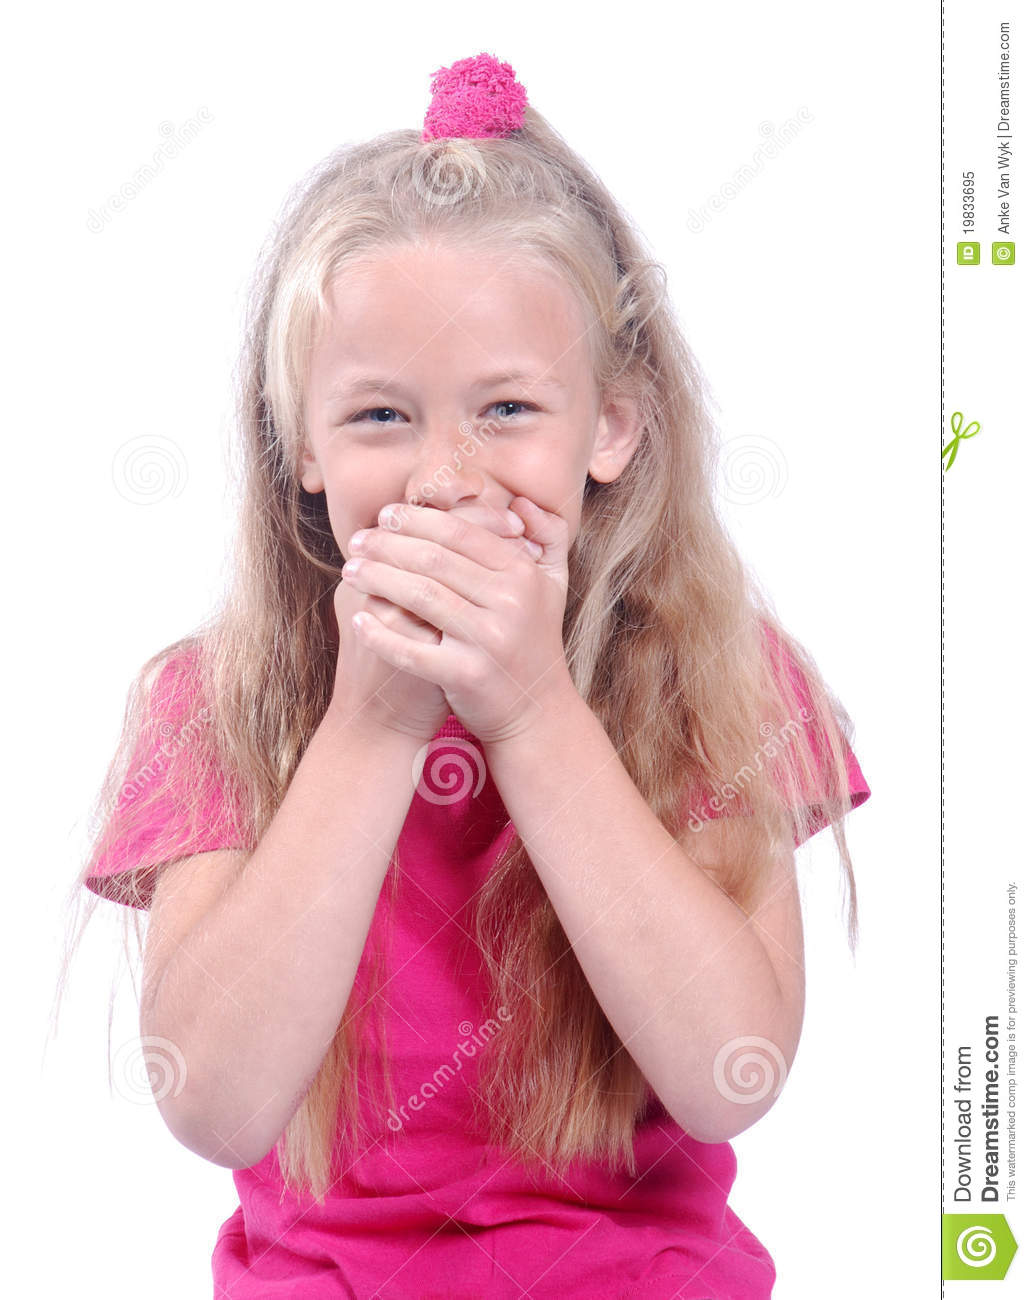 Http Www Dreamstime Com Royalty Free Stock Photo Little Girl Giggling Image19833695